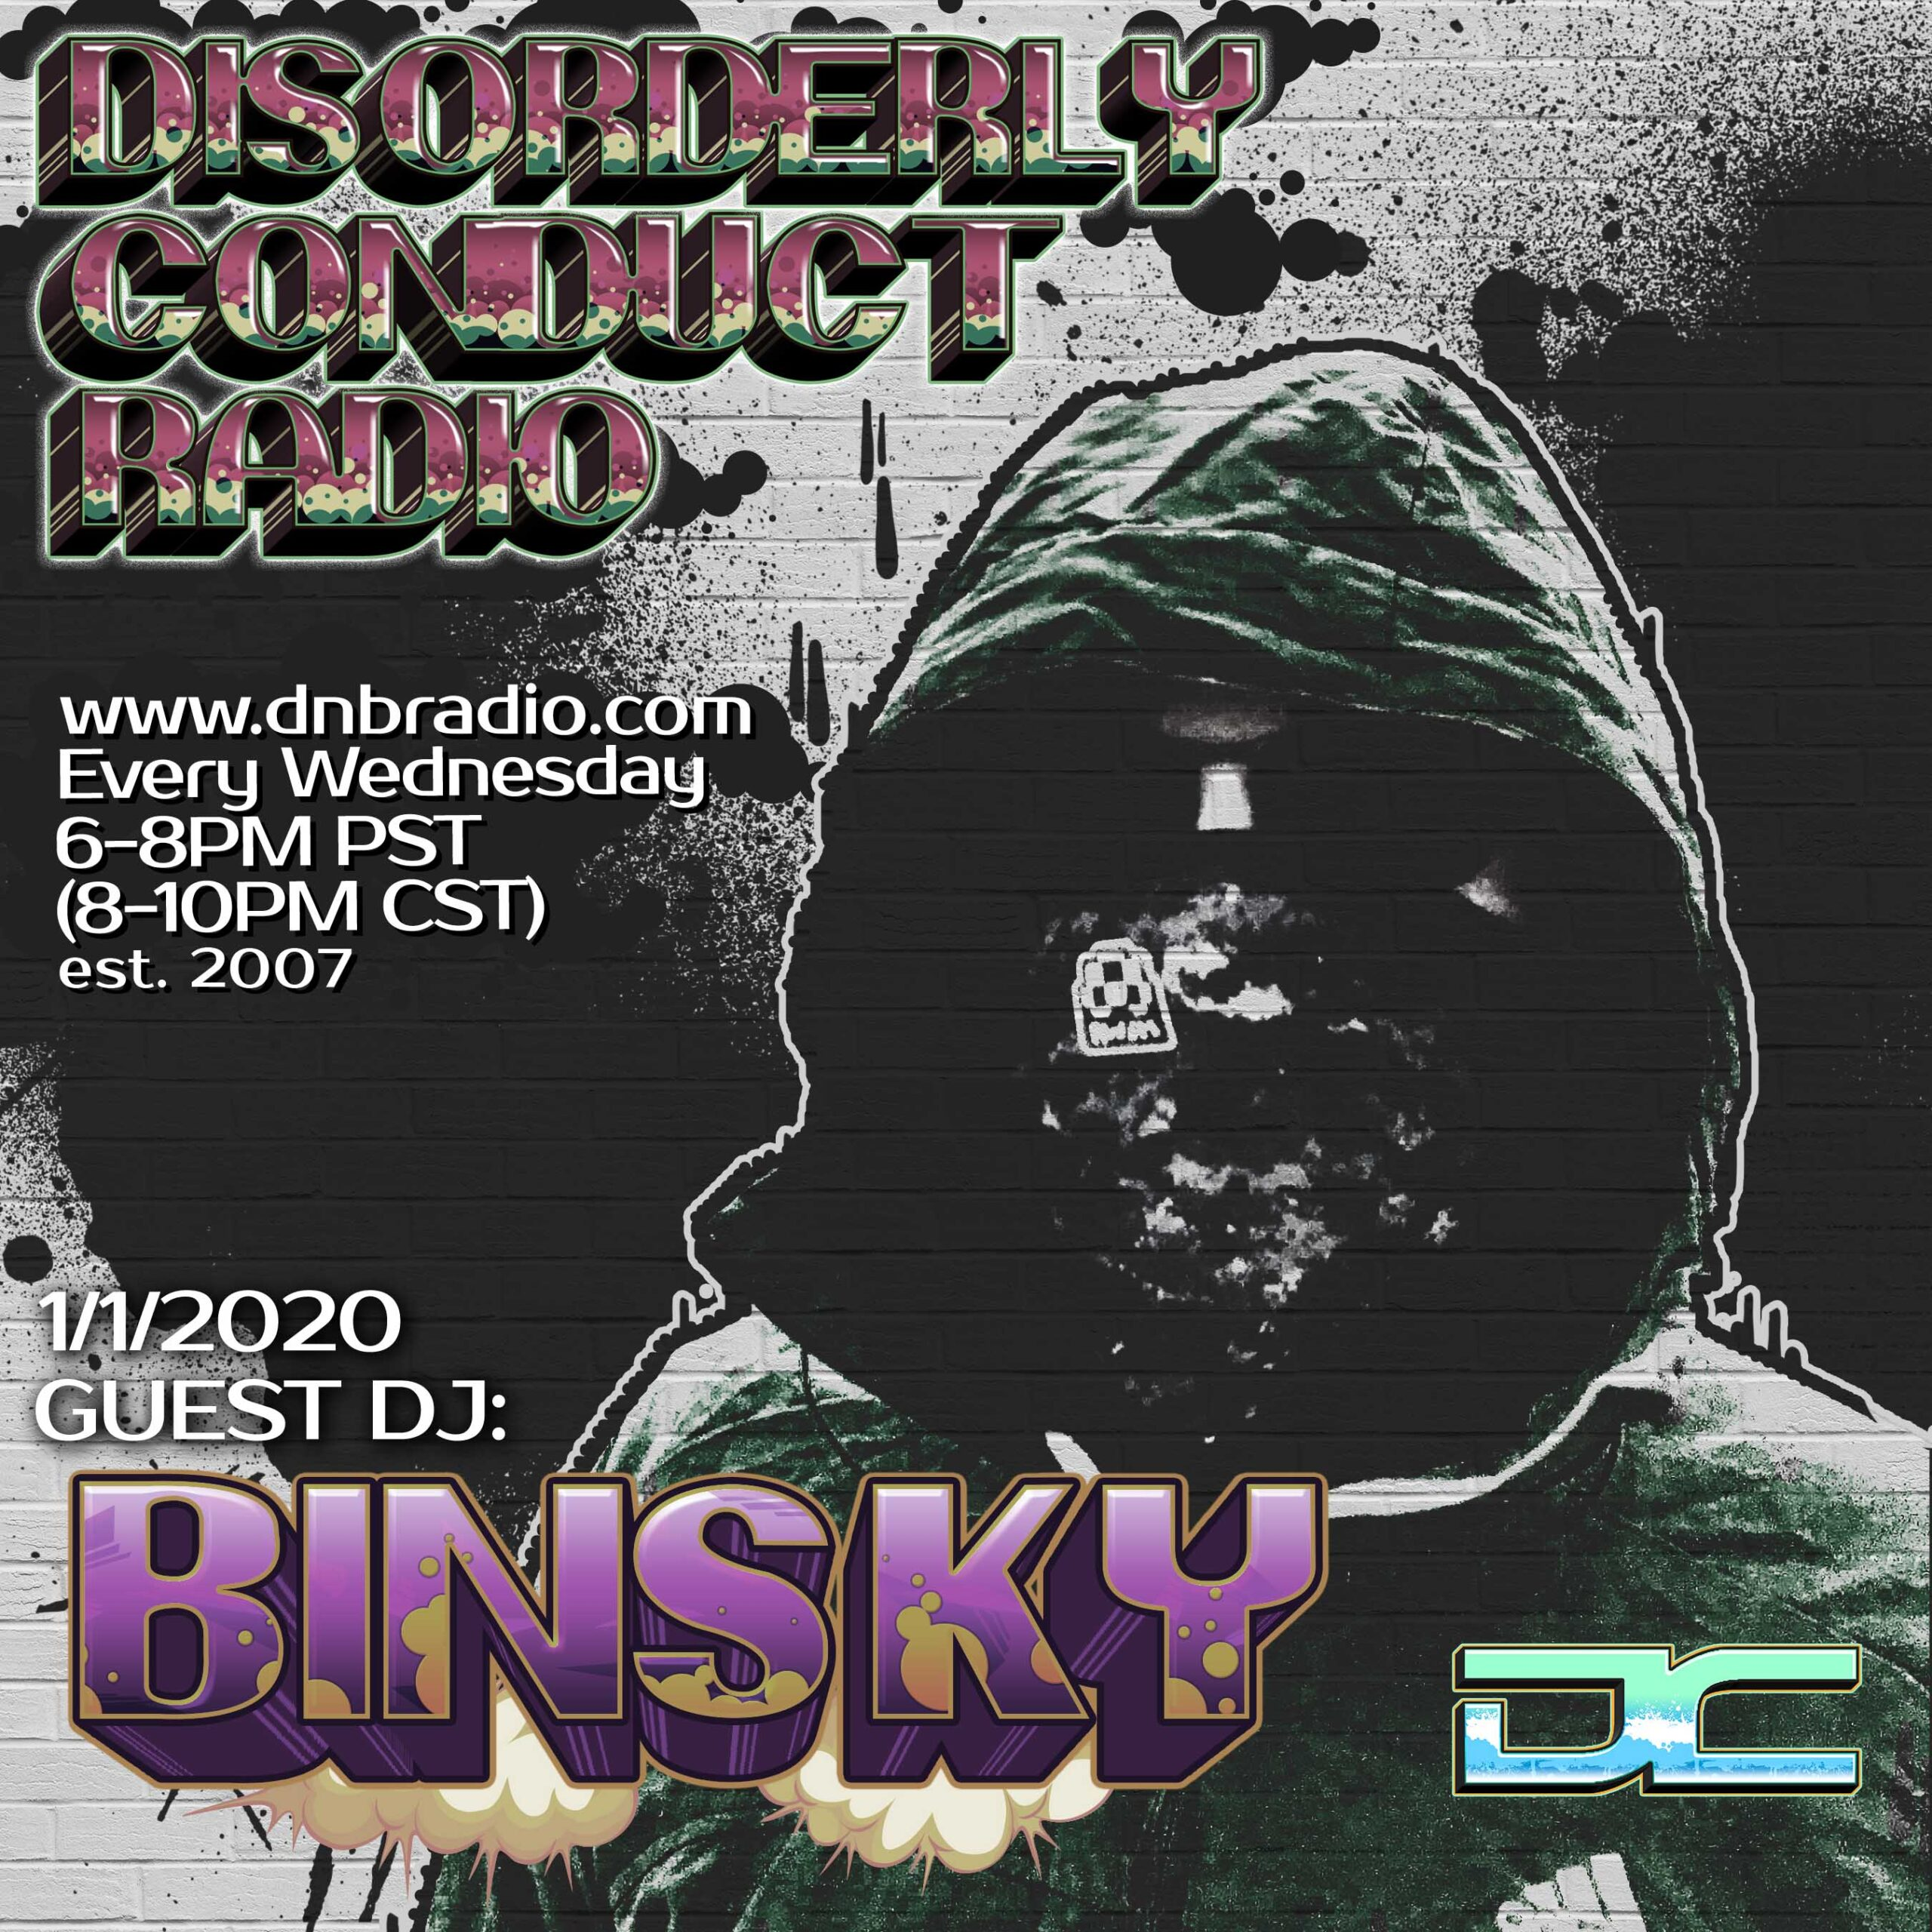 Mr. Solve and Binsky – Disorderly Conduct Radio 111319